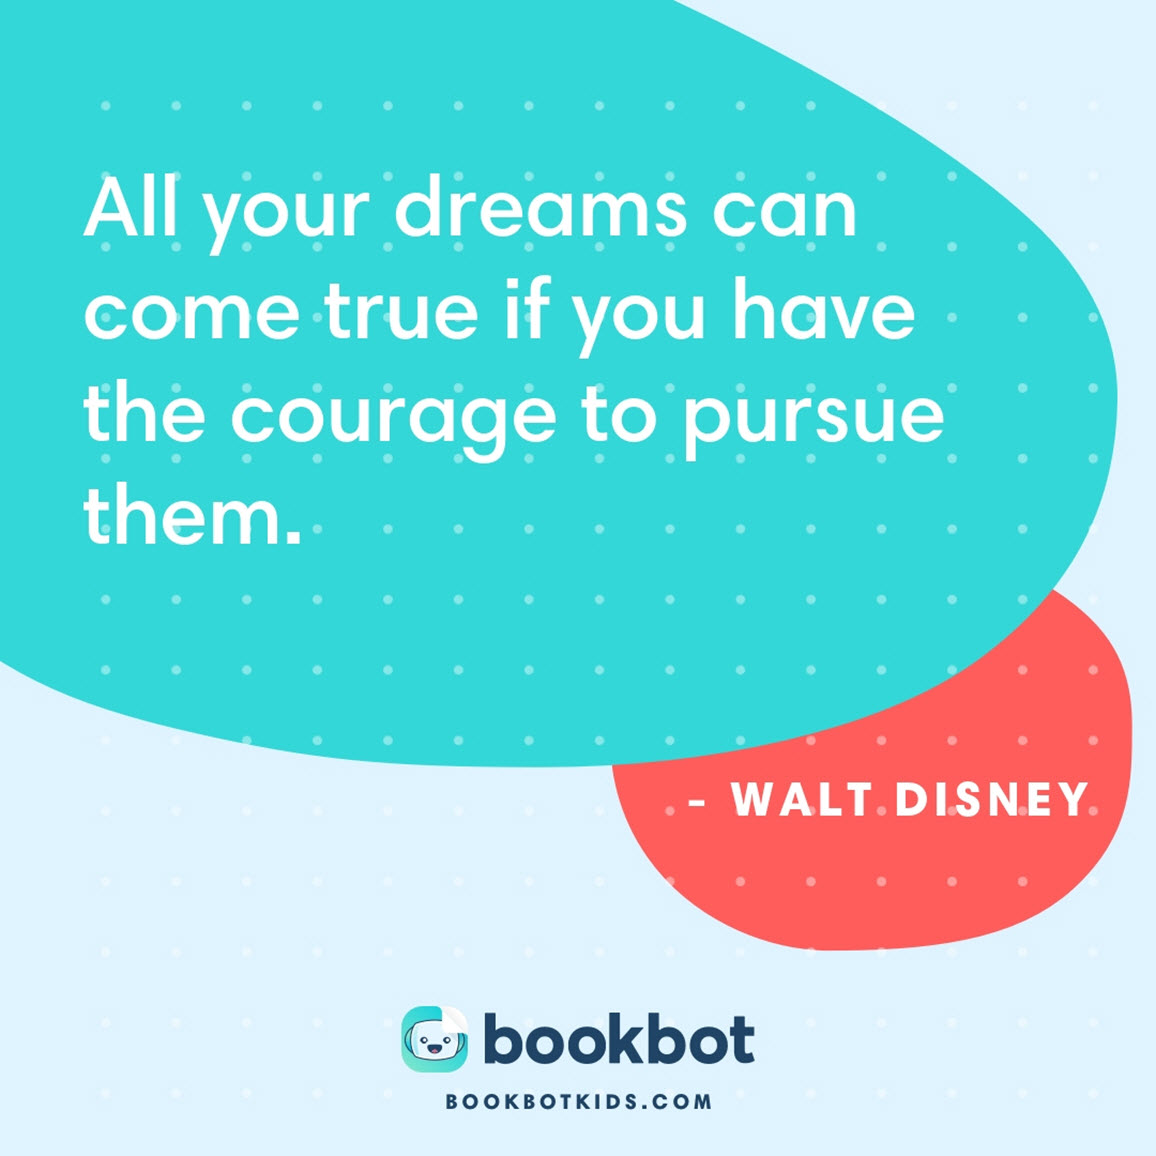 All your dreams can come true if you have the courage to pursue them. – Walt Disney